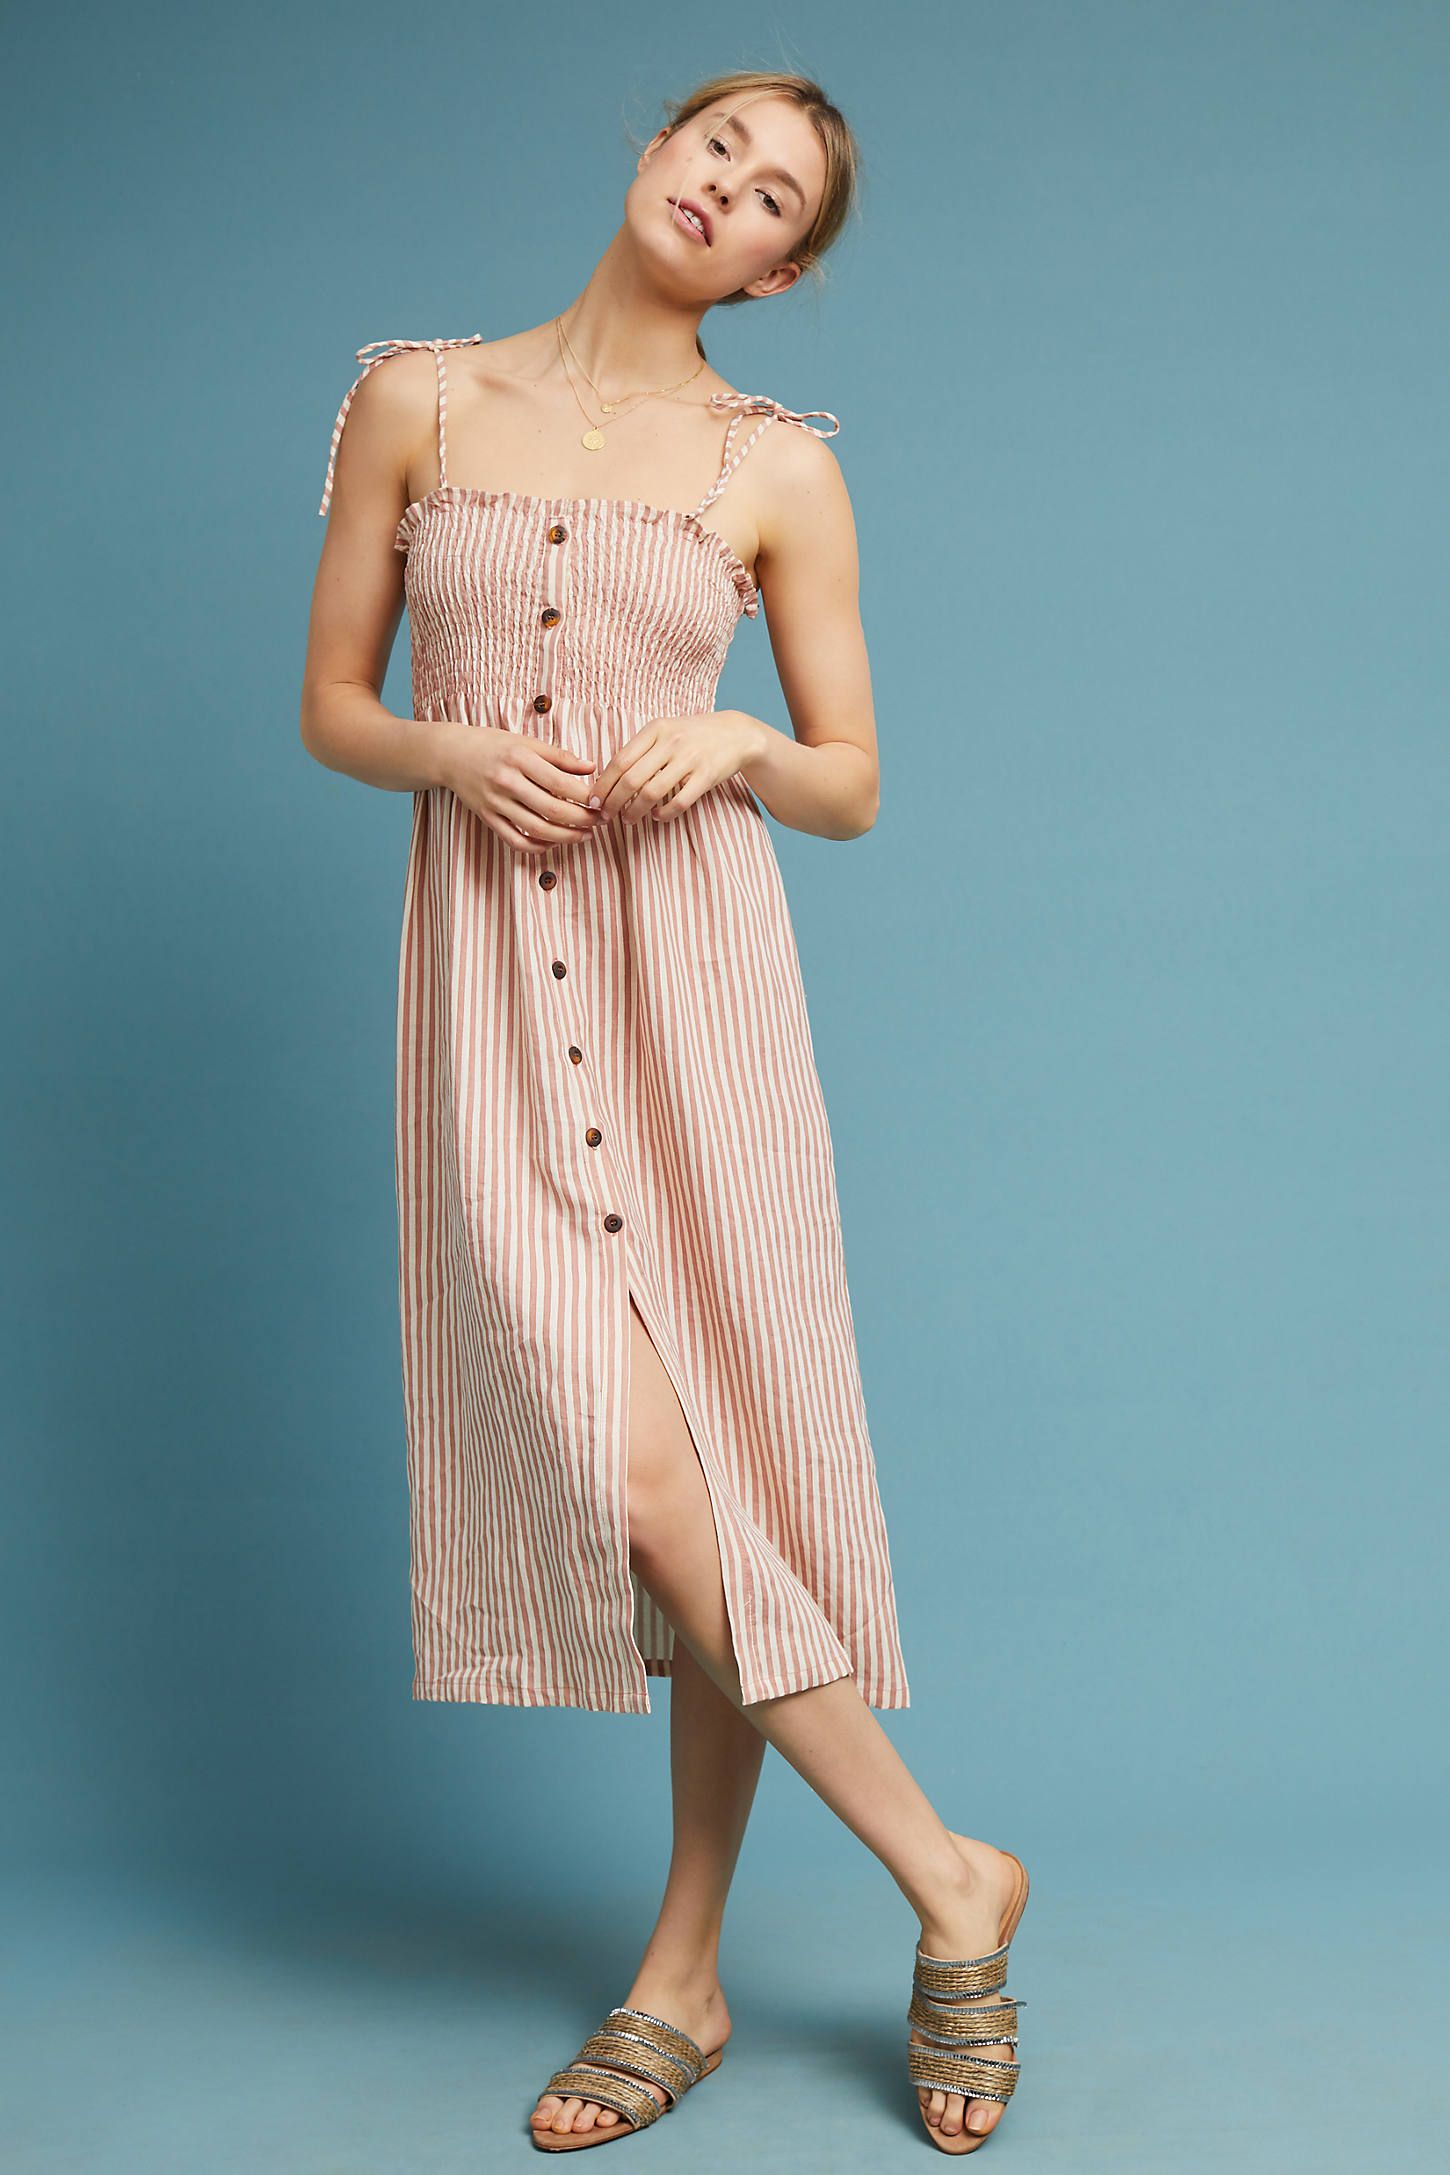 95d670876850 Airy summer dress from Faithfull | Summer Vacation Style in 2019 ...